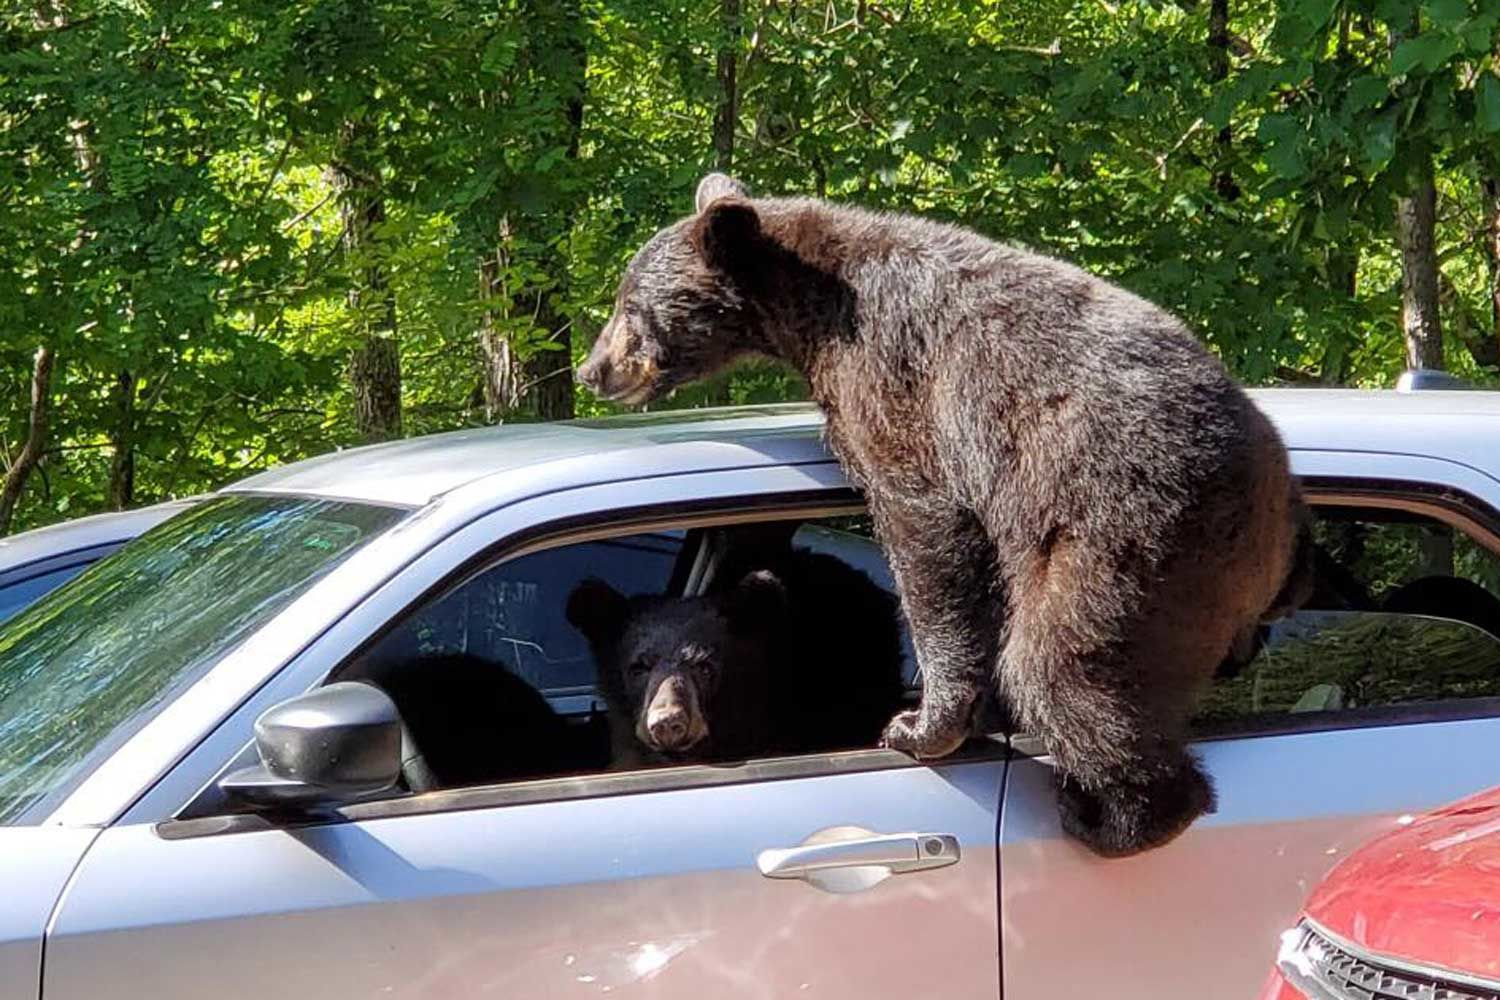 Man Finds Three Bears Casually Climbing Into His Car in Tennessee